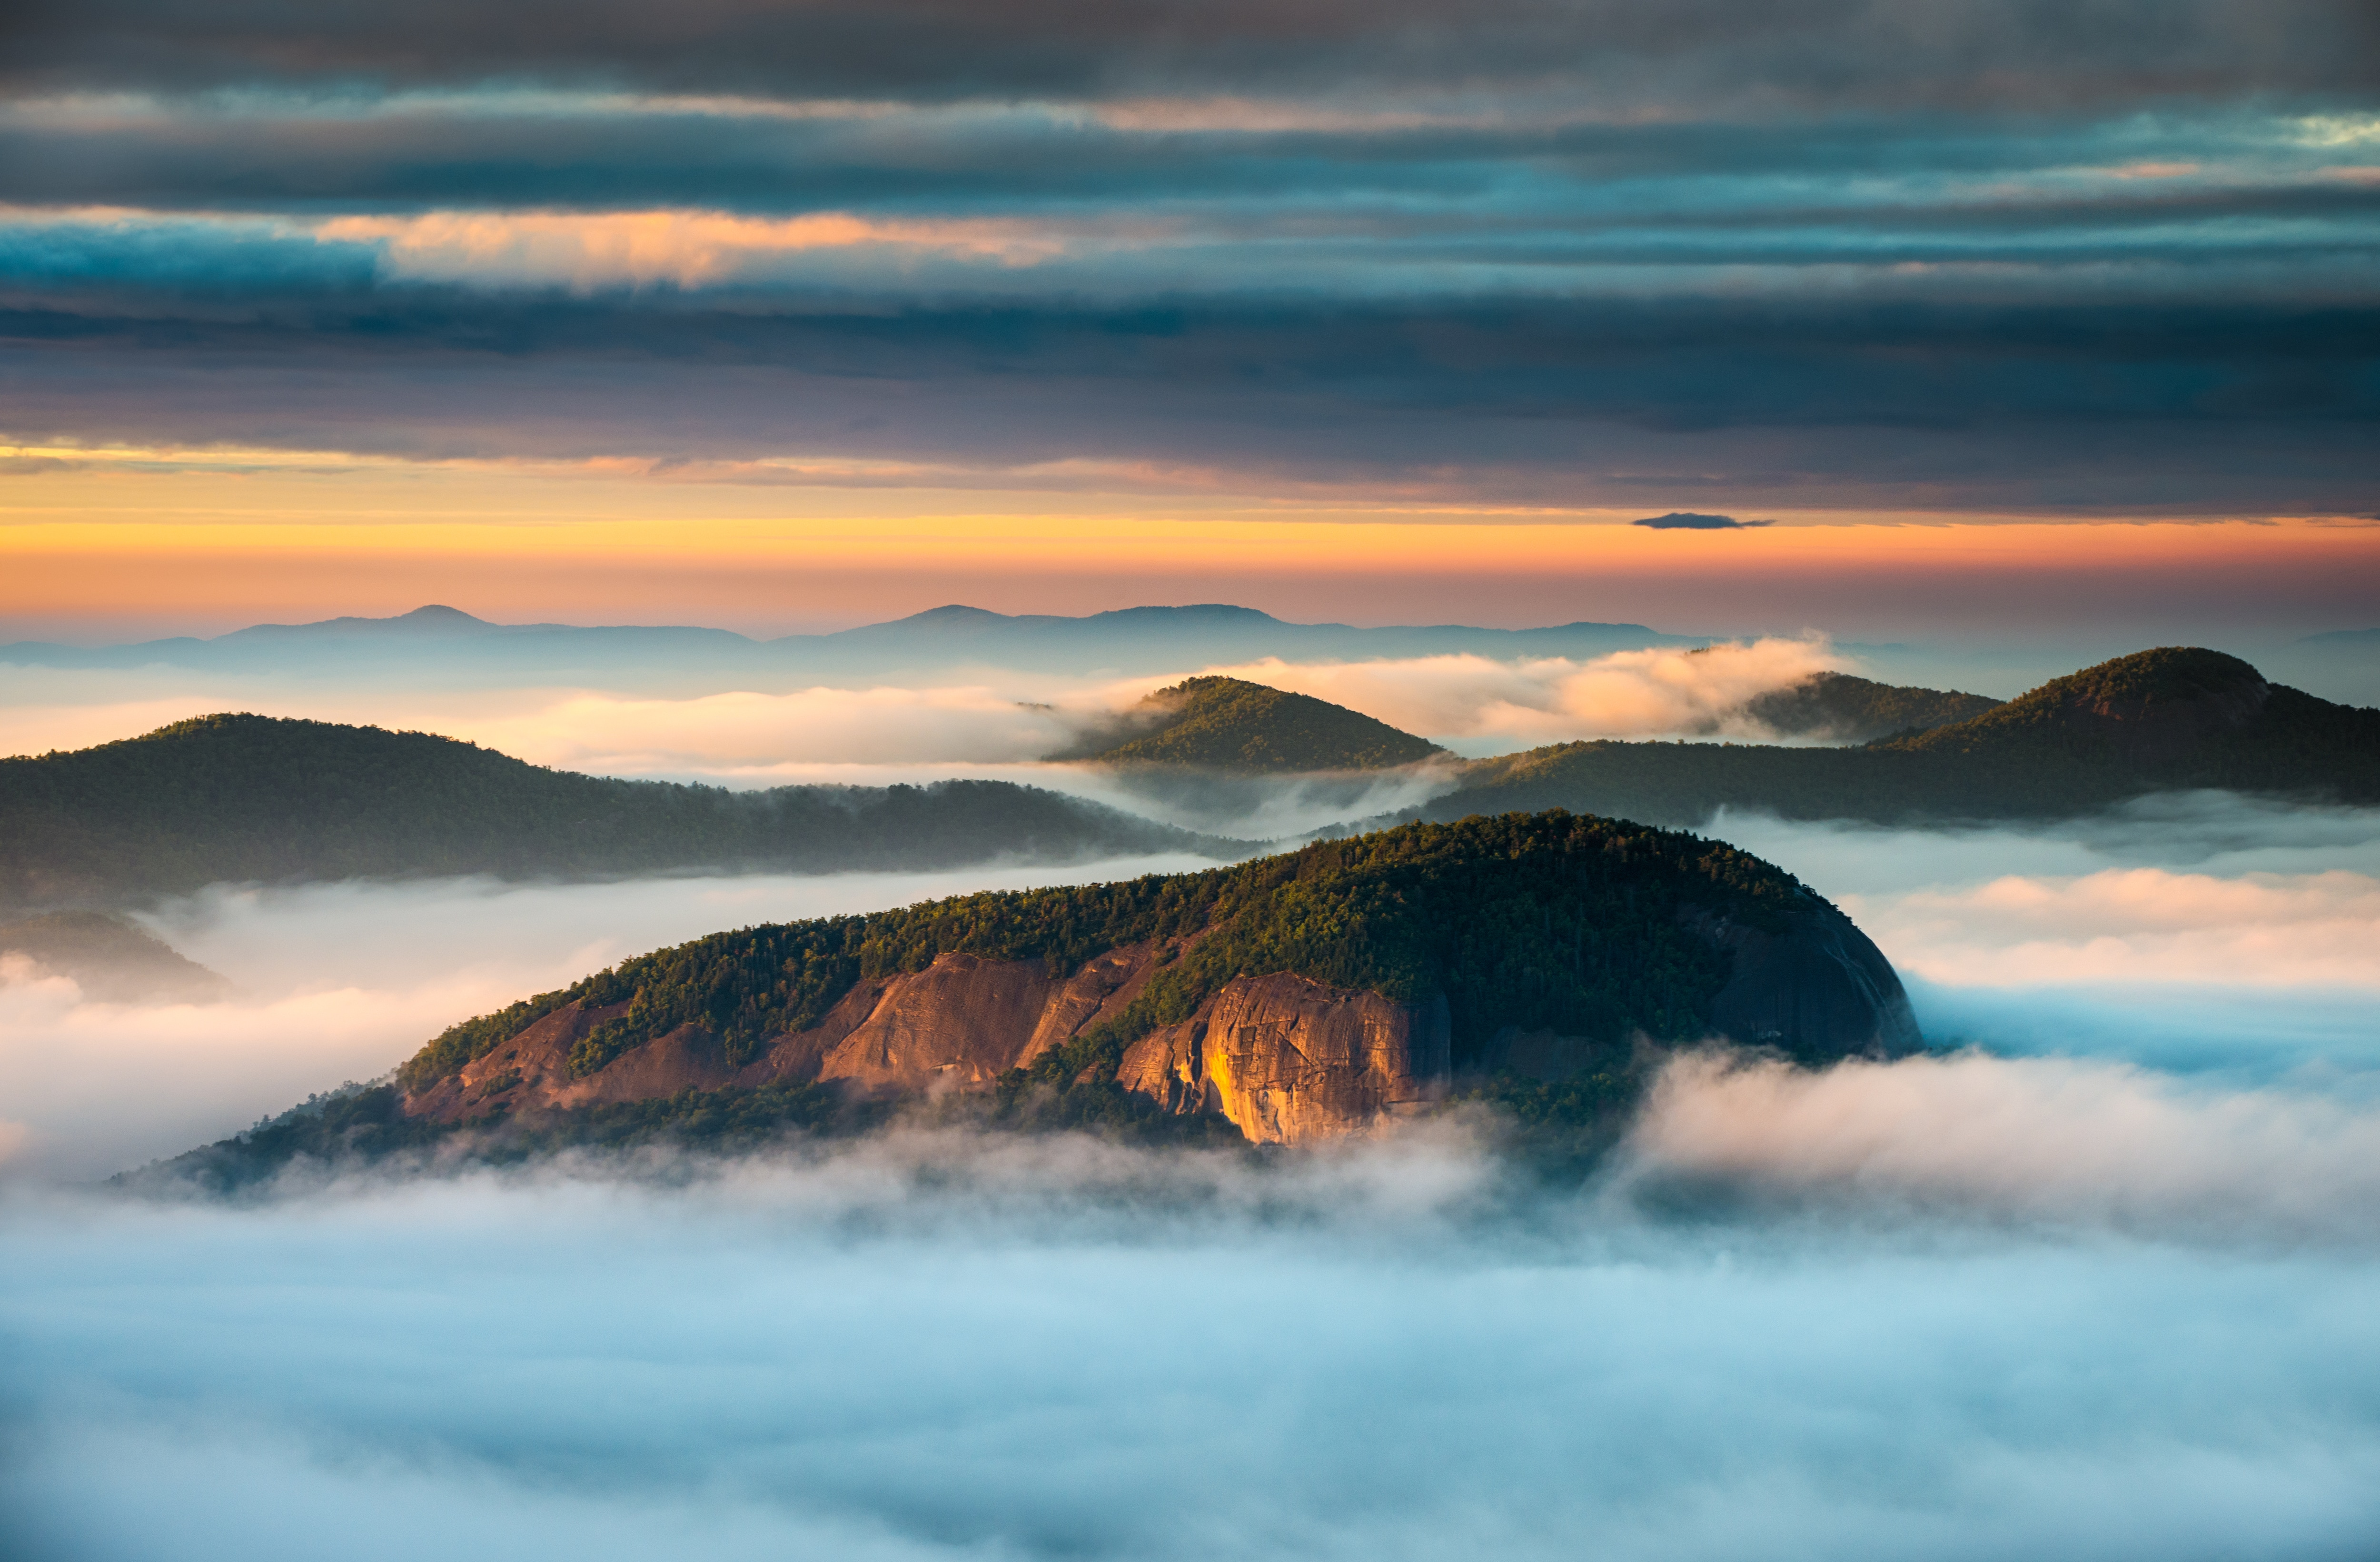 Early birds can catch a sunrise at nearby Looking Glass Rock.